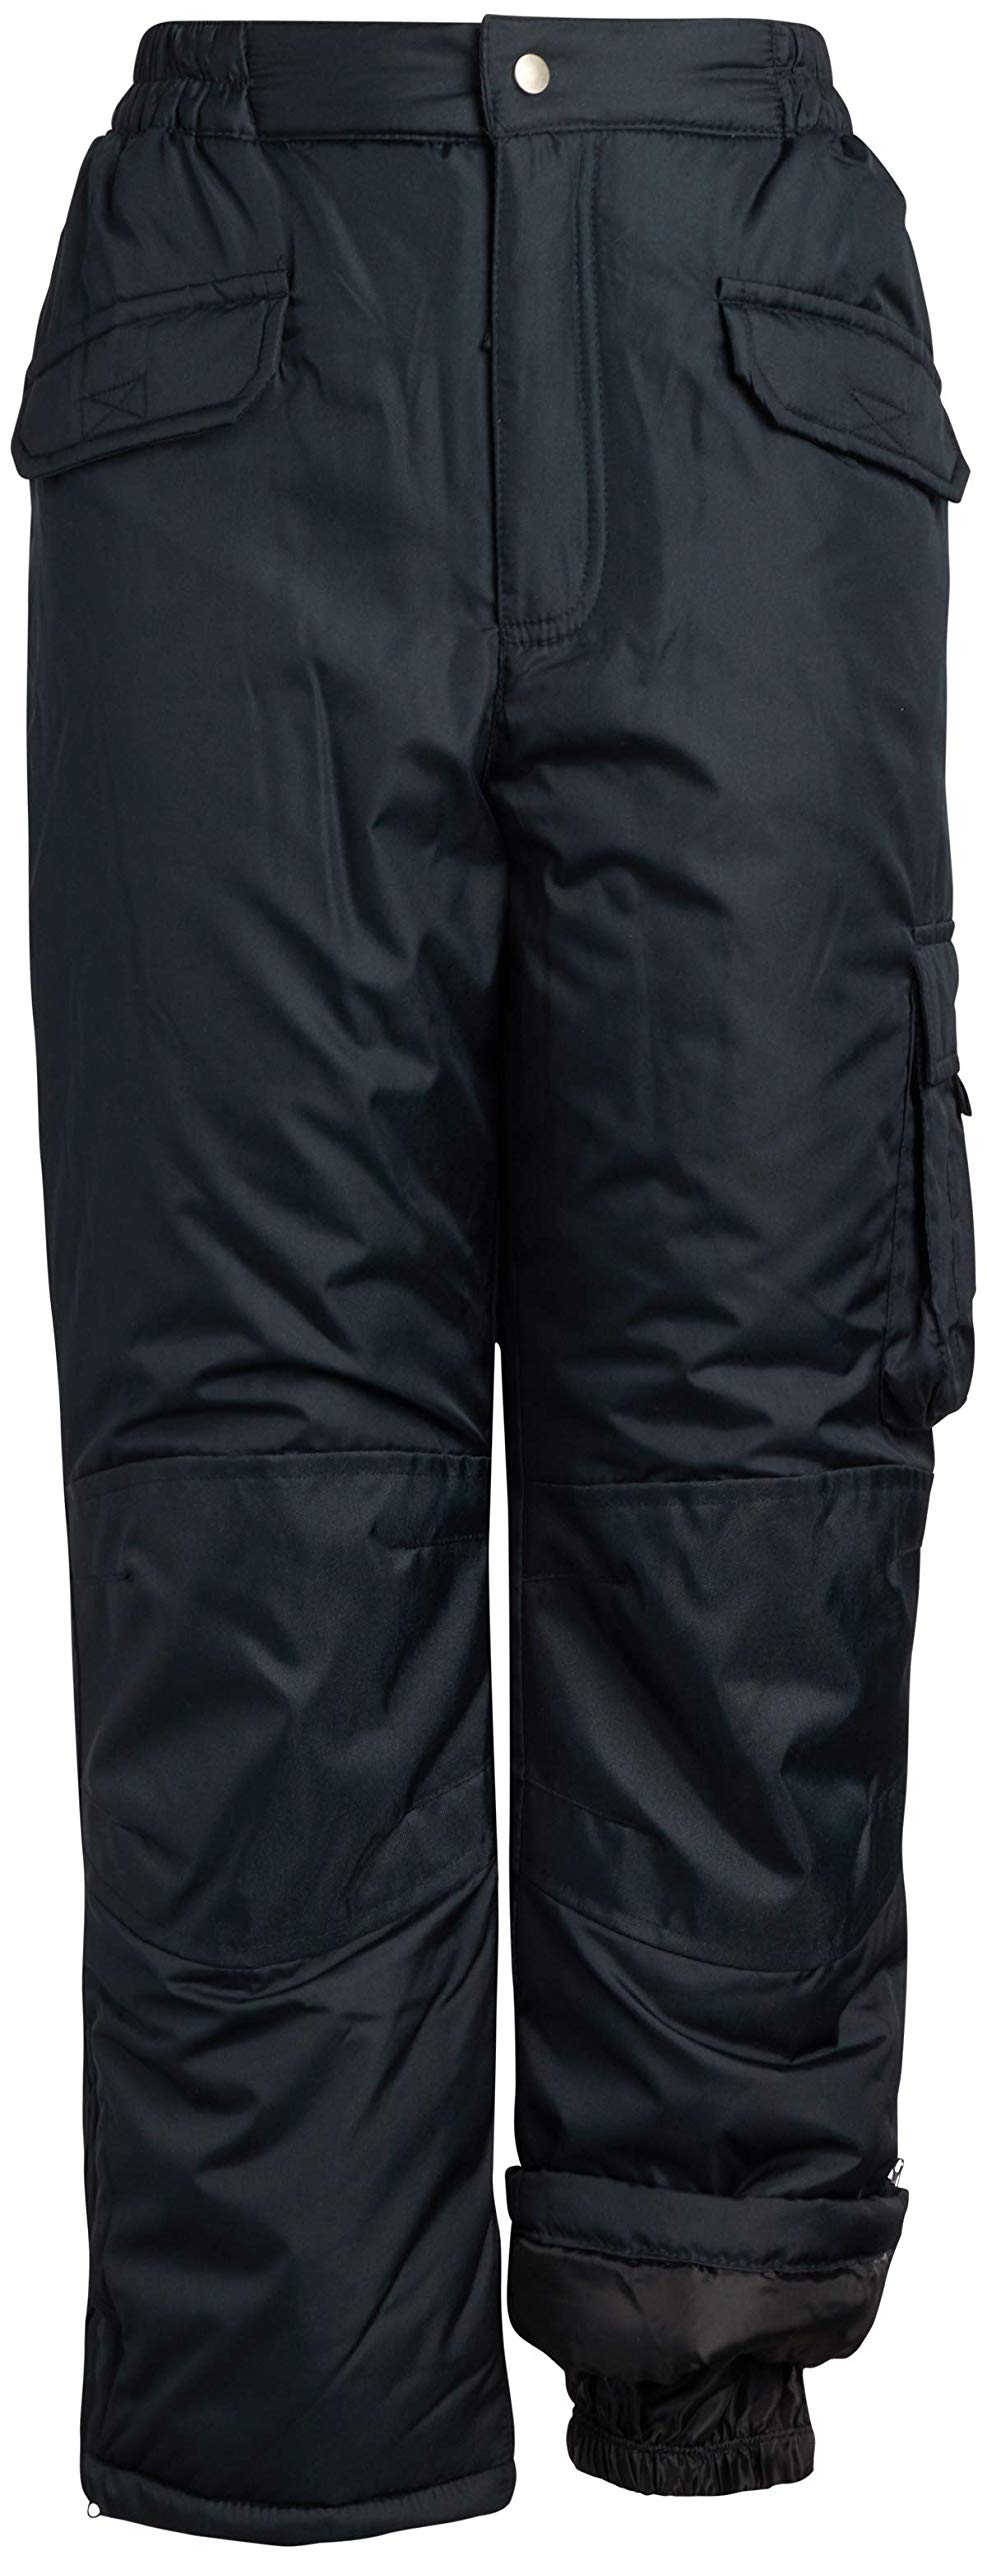 Cherokee Boys & Girls Insulated Ski Snow Pants, Size 8/10, Black' by Cherokee